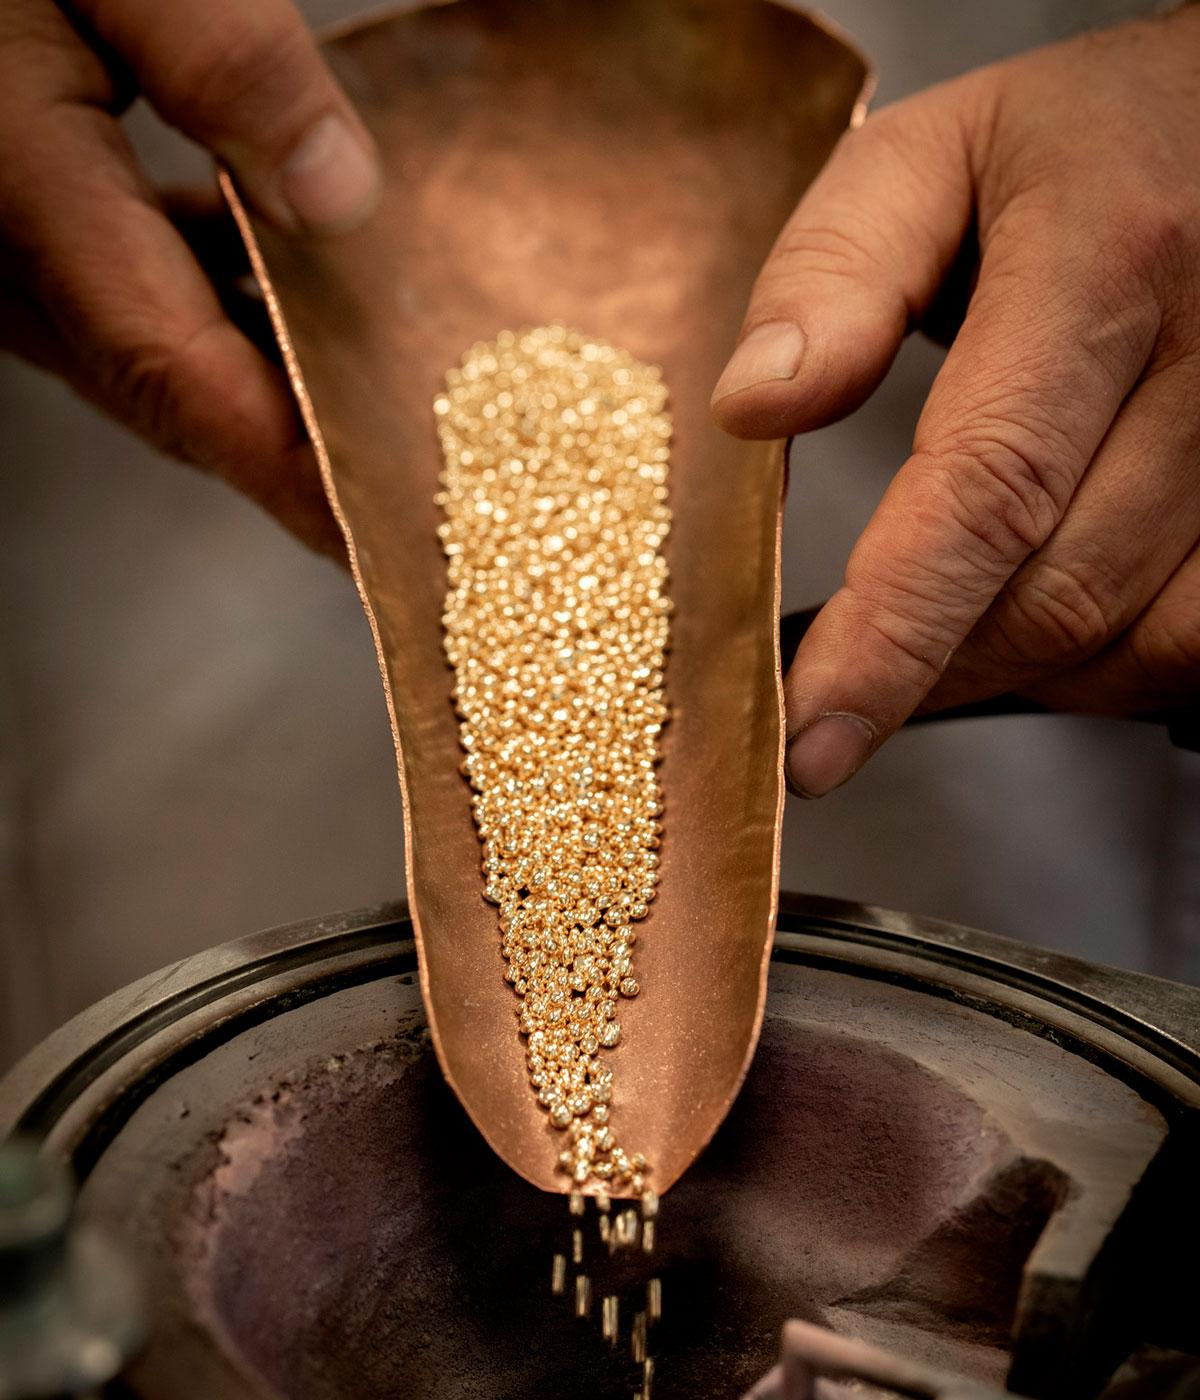 Gold beads being poured into a machine